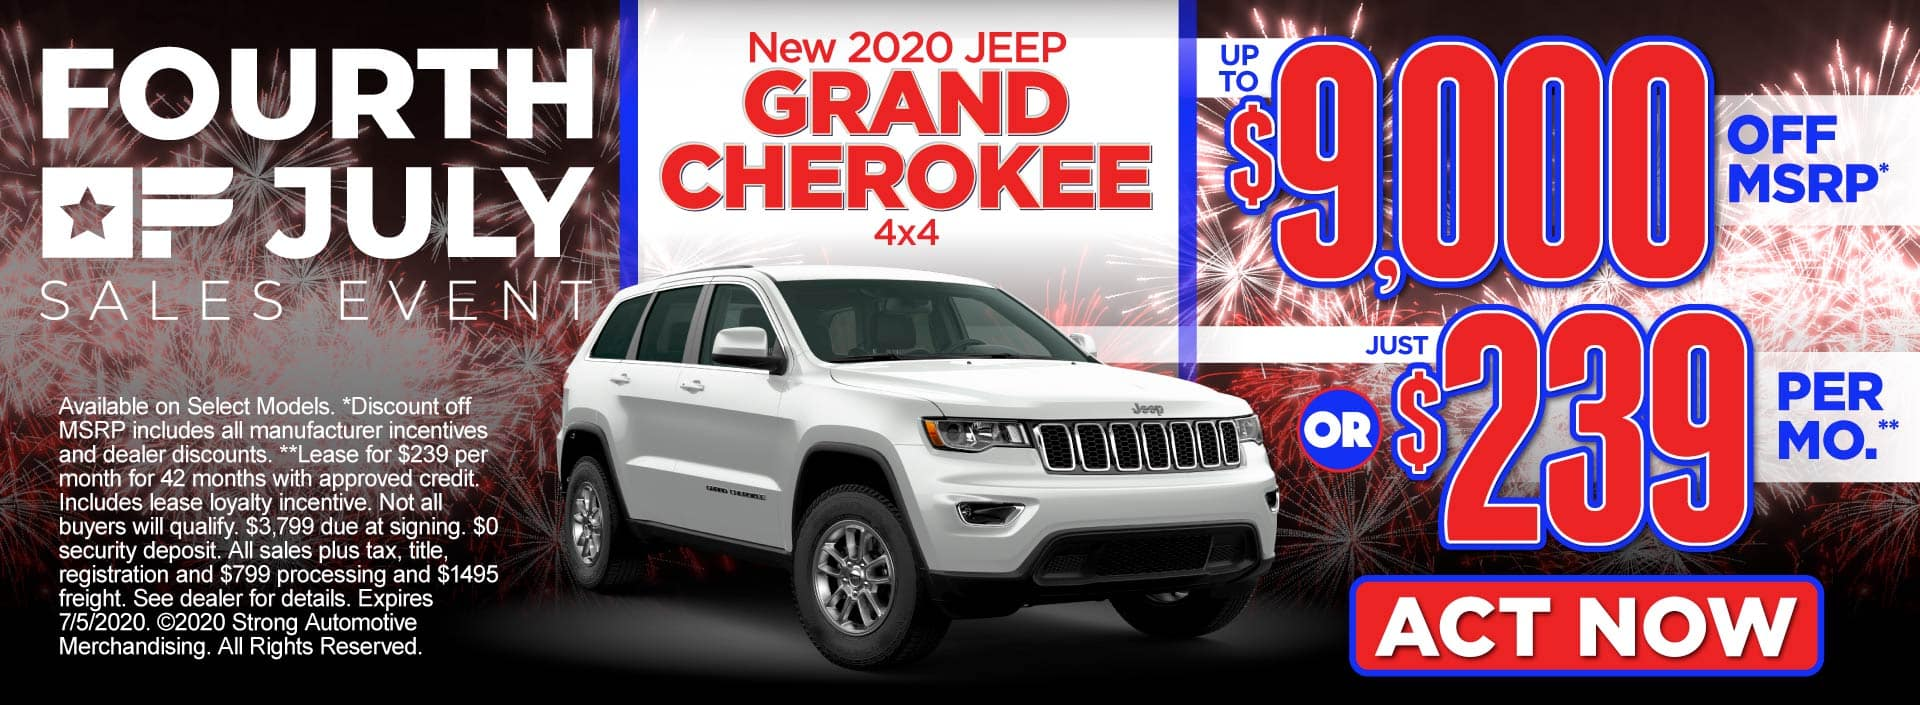 New 2020 Jeep Grand Cherokee – up to $9,000 off MSRP* or just $239 per month** – Act Now